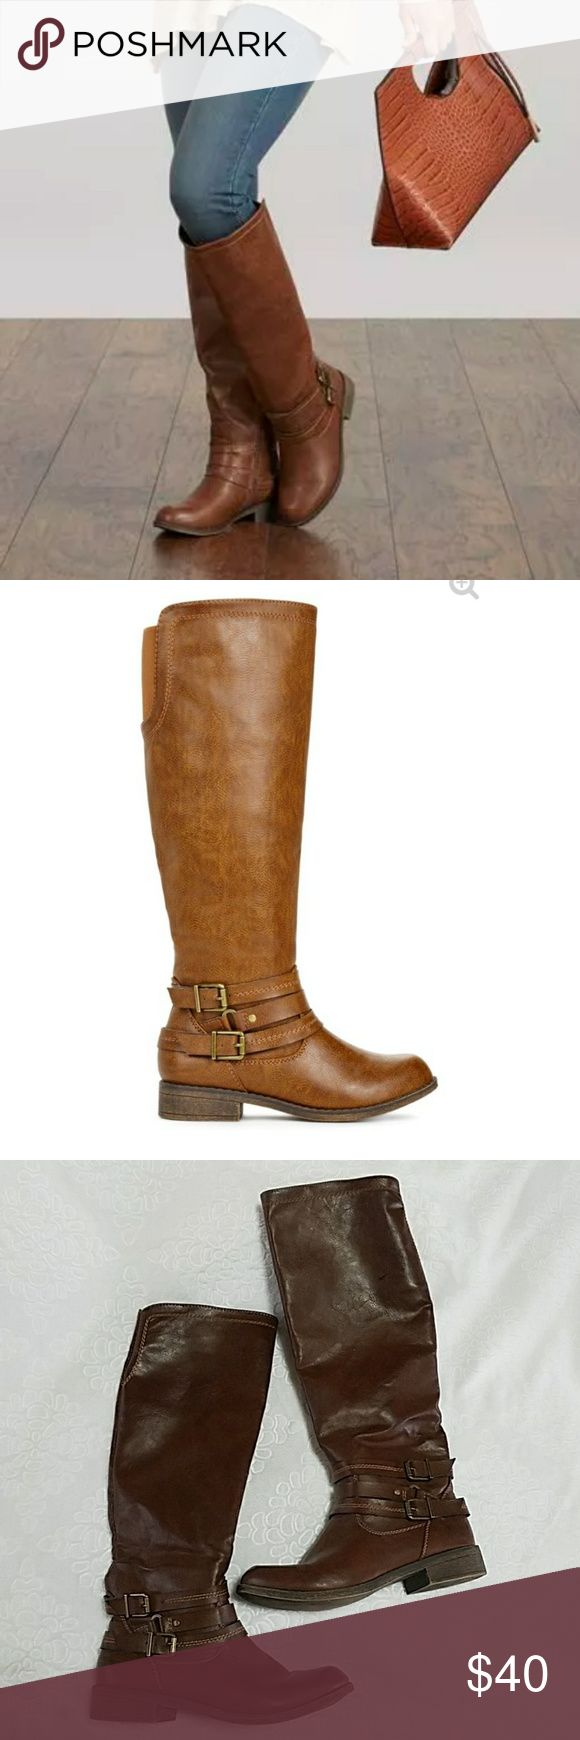 Just Fab Tall Brown Boots Tall brown Austie boots from Just Fab. Cute buckle design on side, zip up inner. Actual boot is pictured after the first two pictures. Some small signs of wear but overall still in great condition!   Height of boot 18.75 in.  🖤🖤🖤 JustFab Shoes Over the Knee Boots